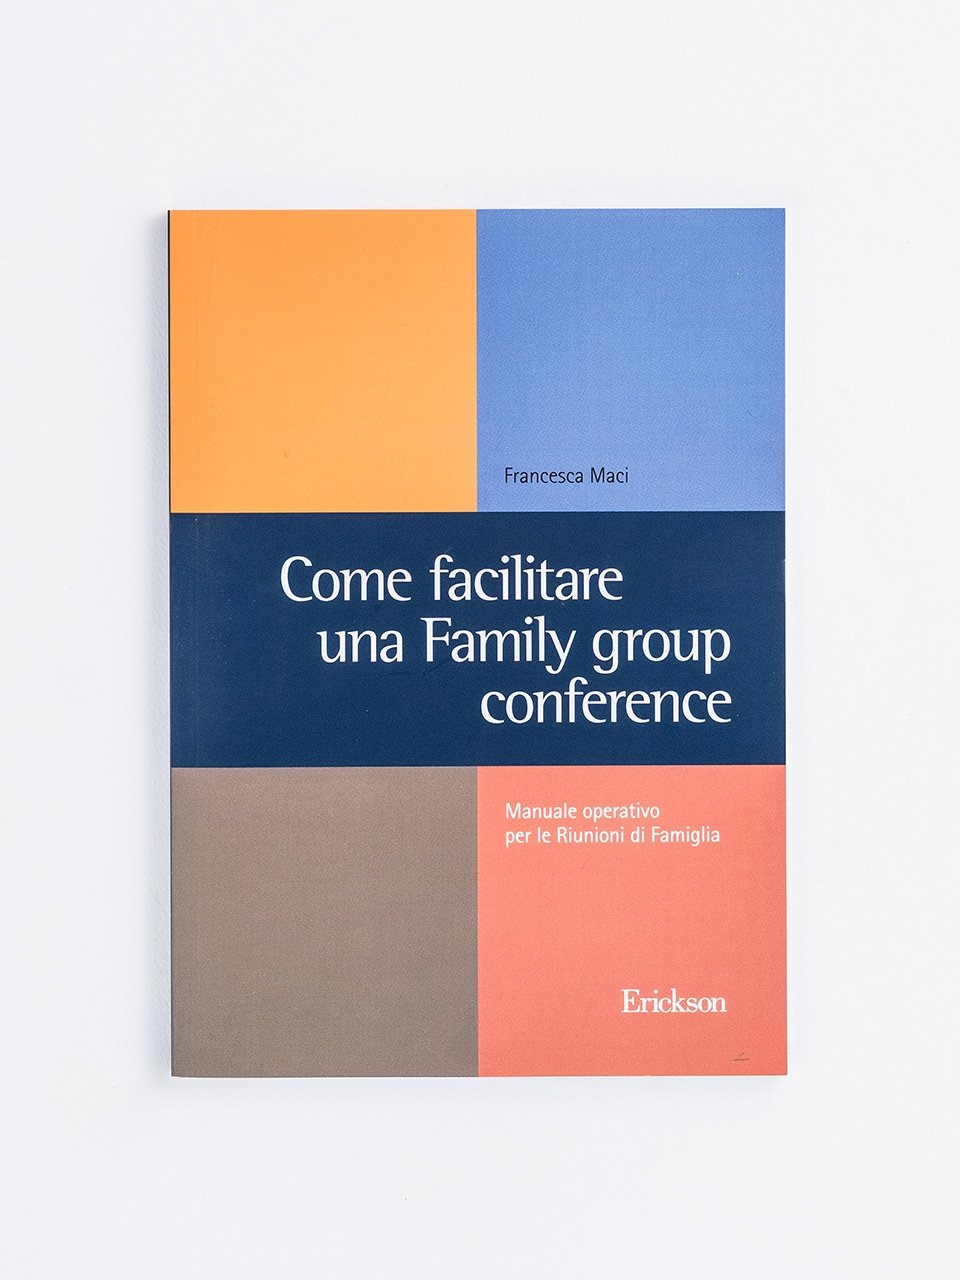 Come facilitare una Family group conference - Orientamenti Pedagogici - Riviste - Erickson